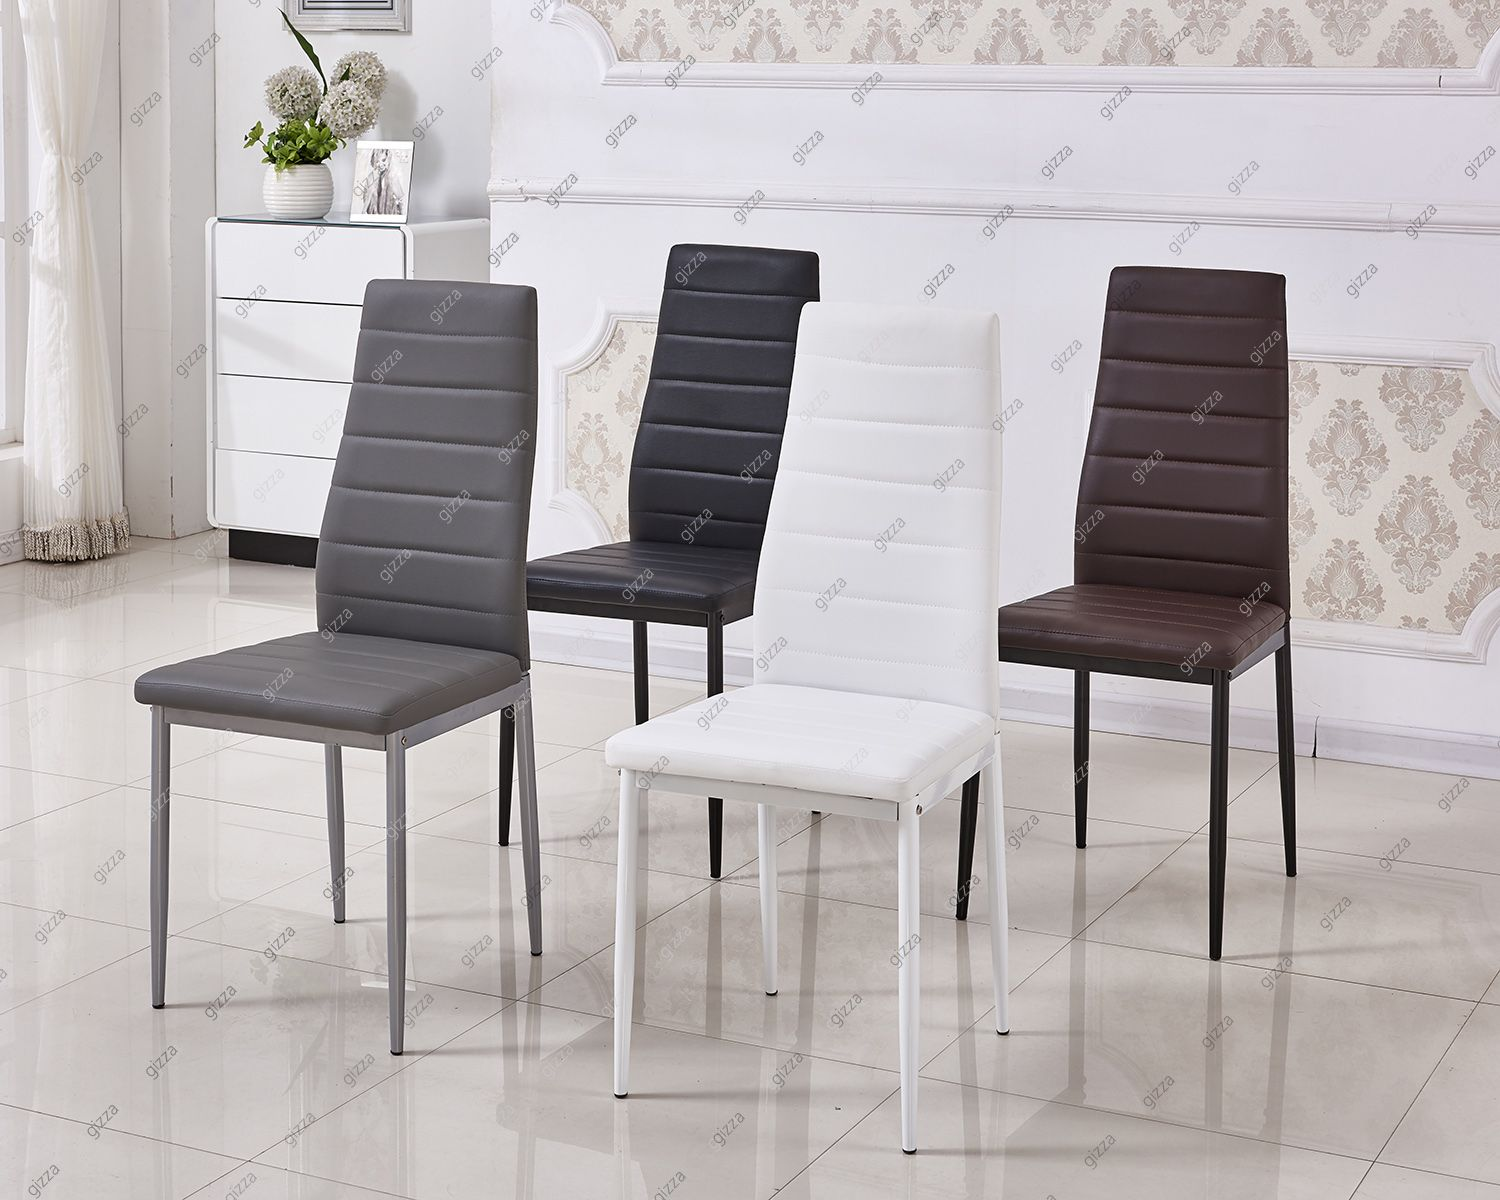 Strange Details About 2 4 6 Dining Chairs Leather Seat Padded Side Evergreenethics Interior Chair Design Evergreenethicsorg